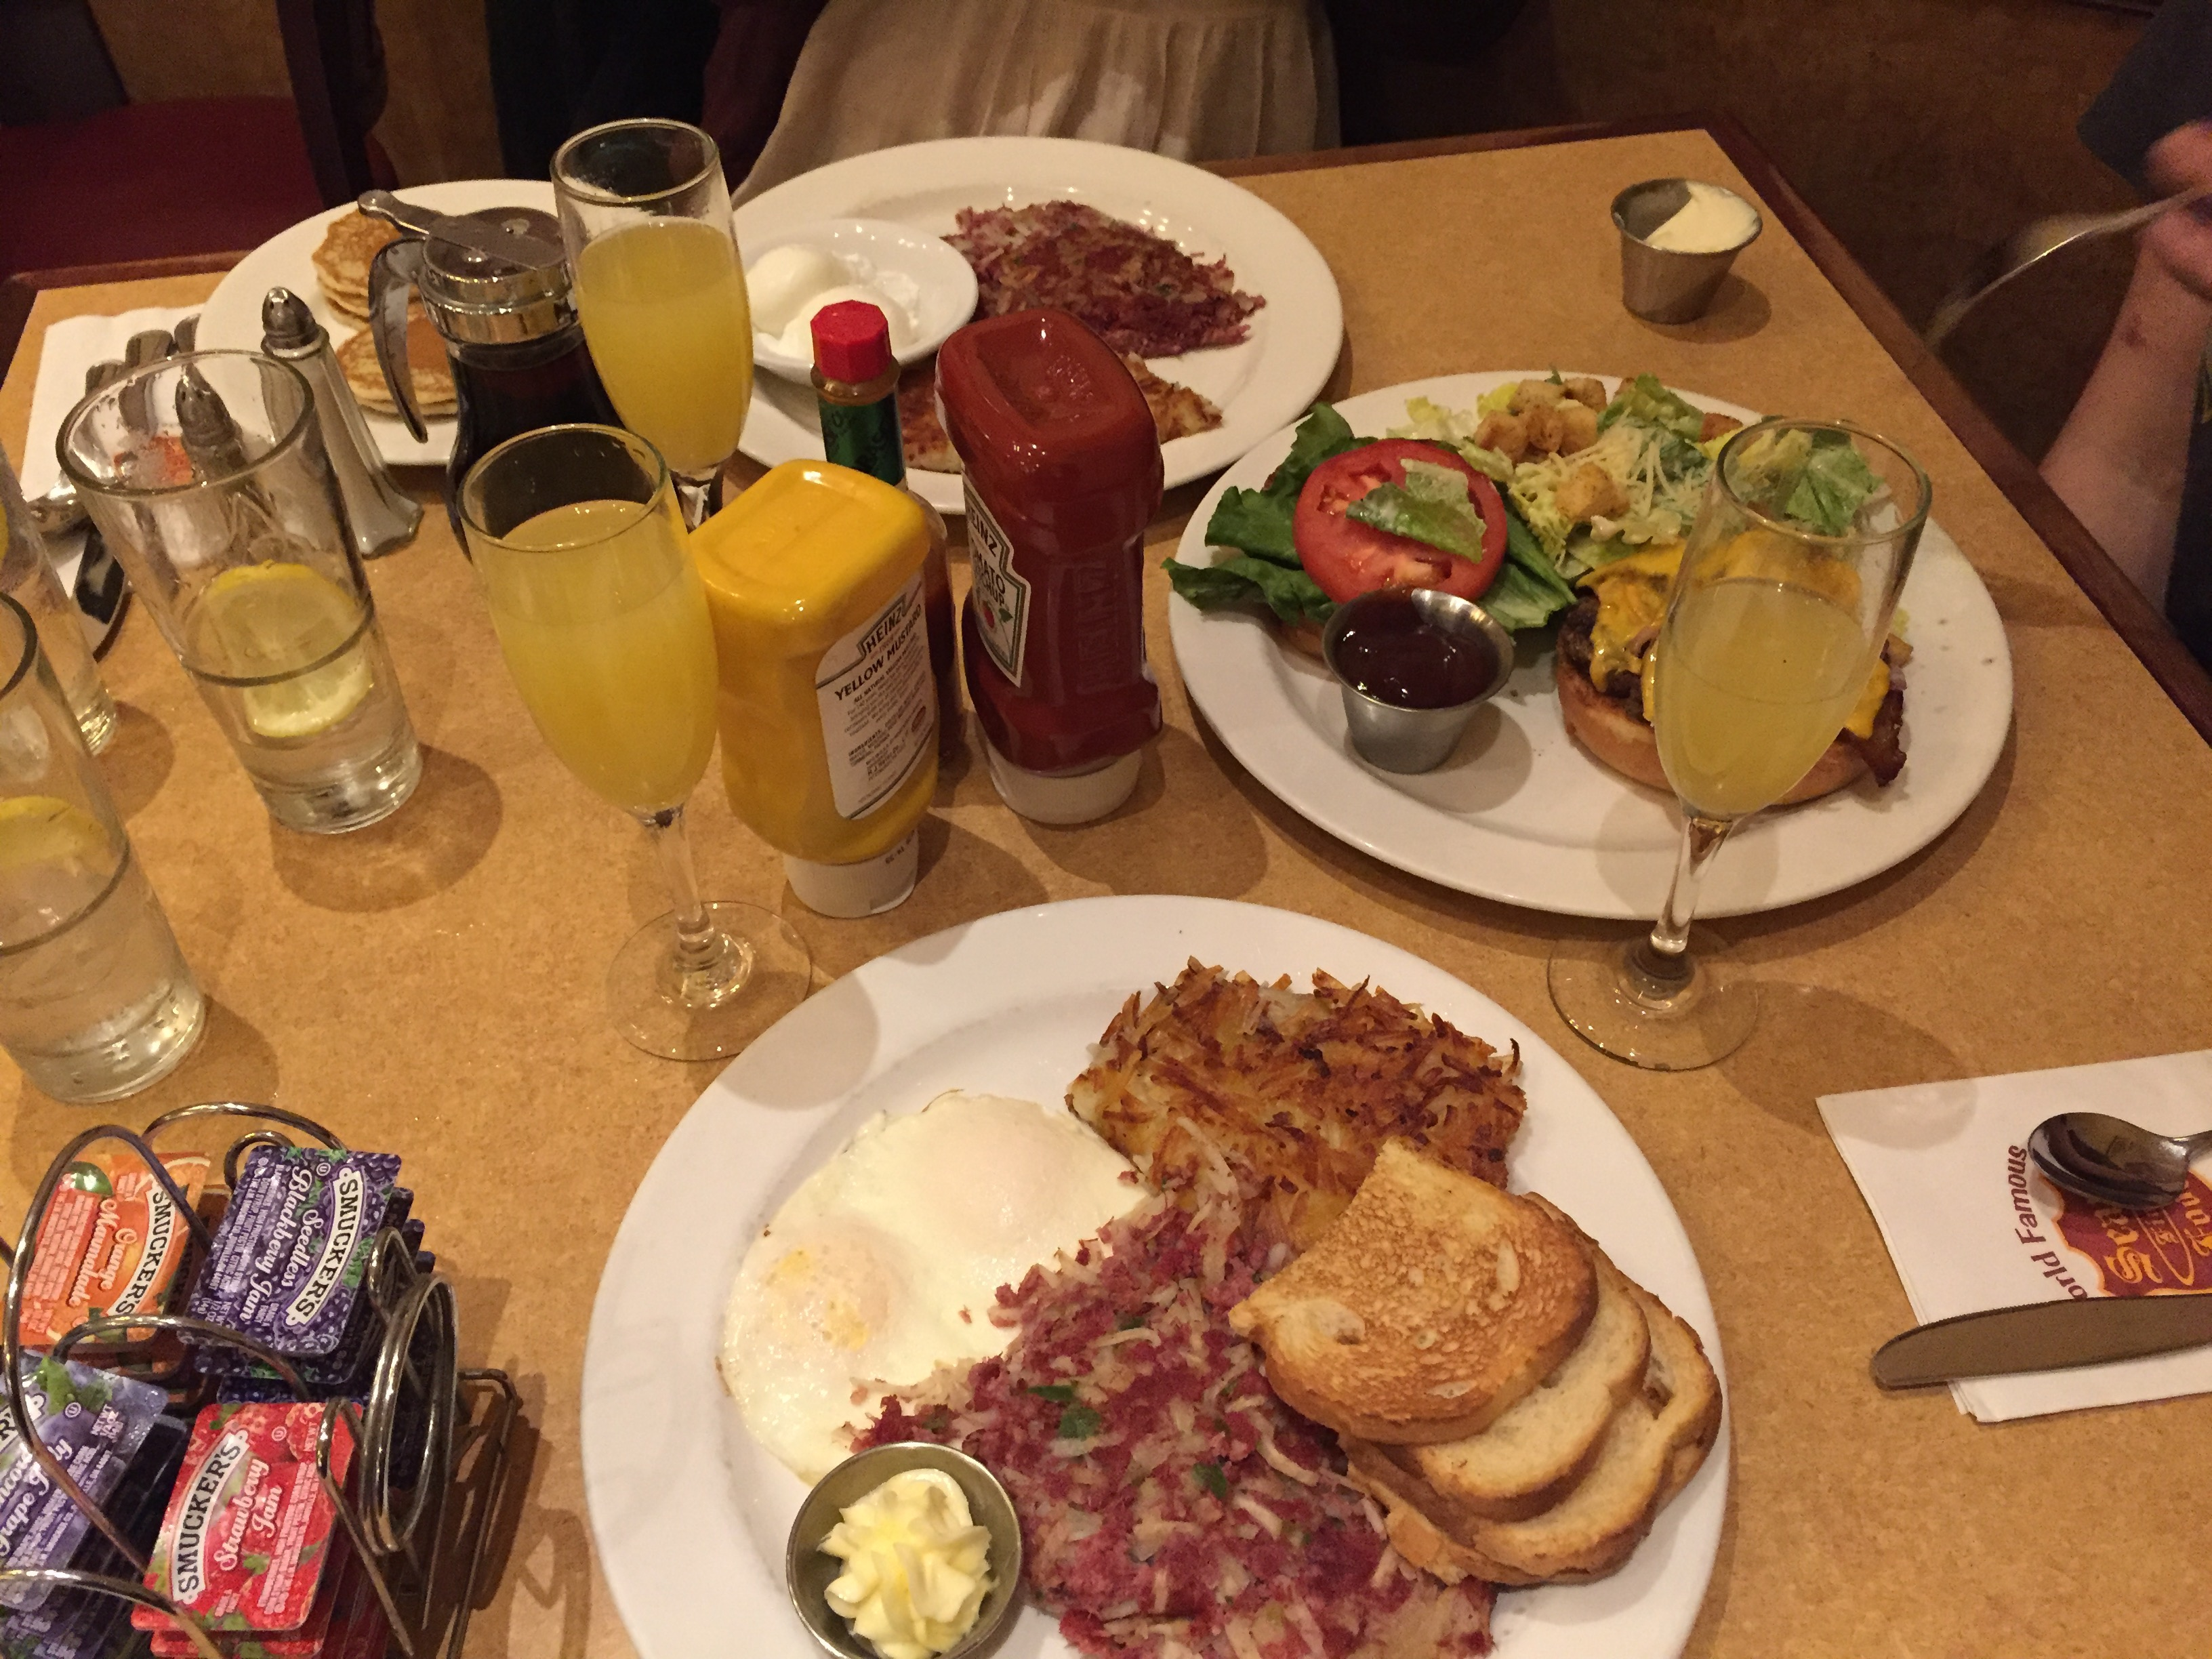 Southern Corned Beef Hash and Eggs, Al's Special, Mimosas | © Lindsey Kuwatani